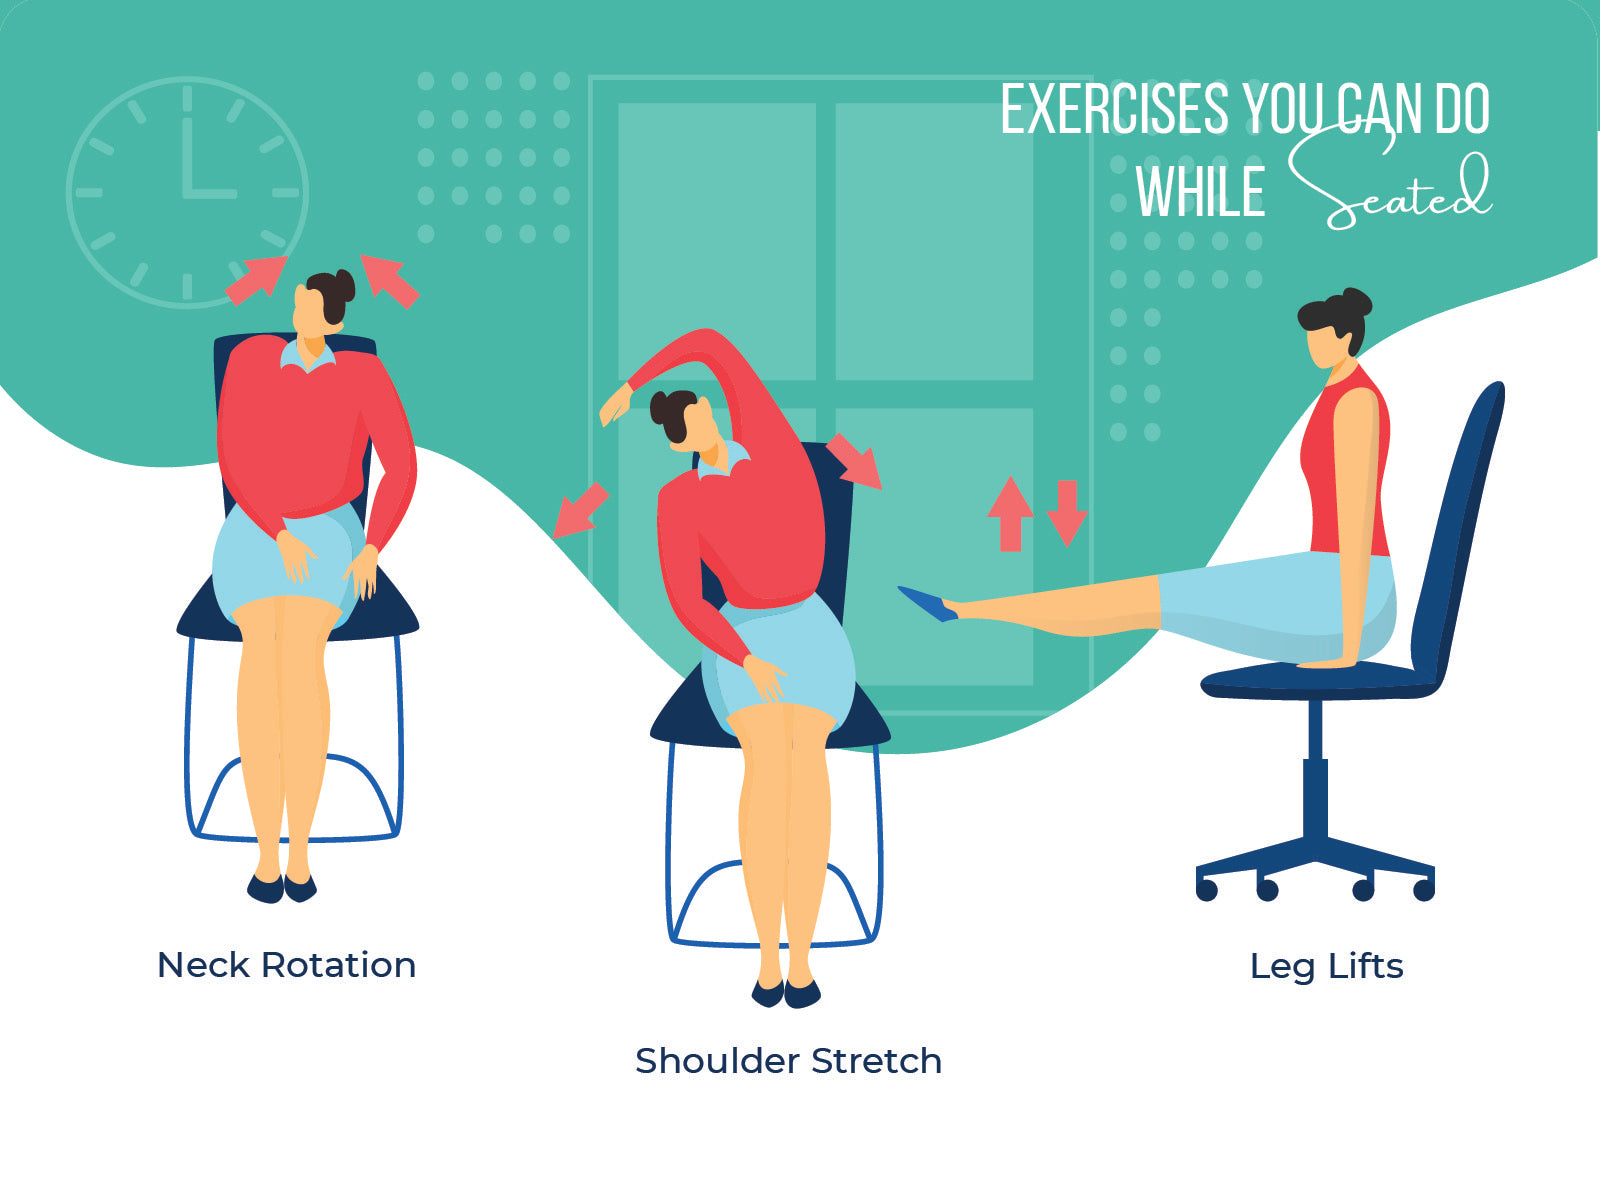 Exercises you can do while seated